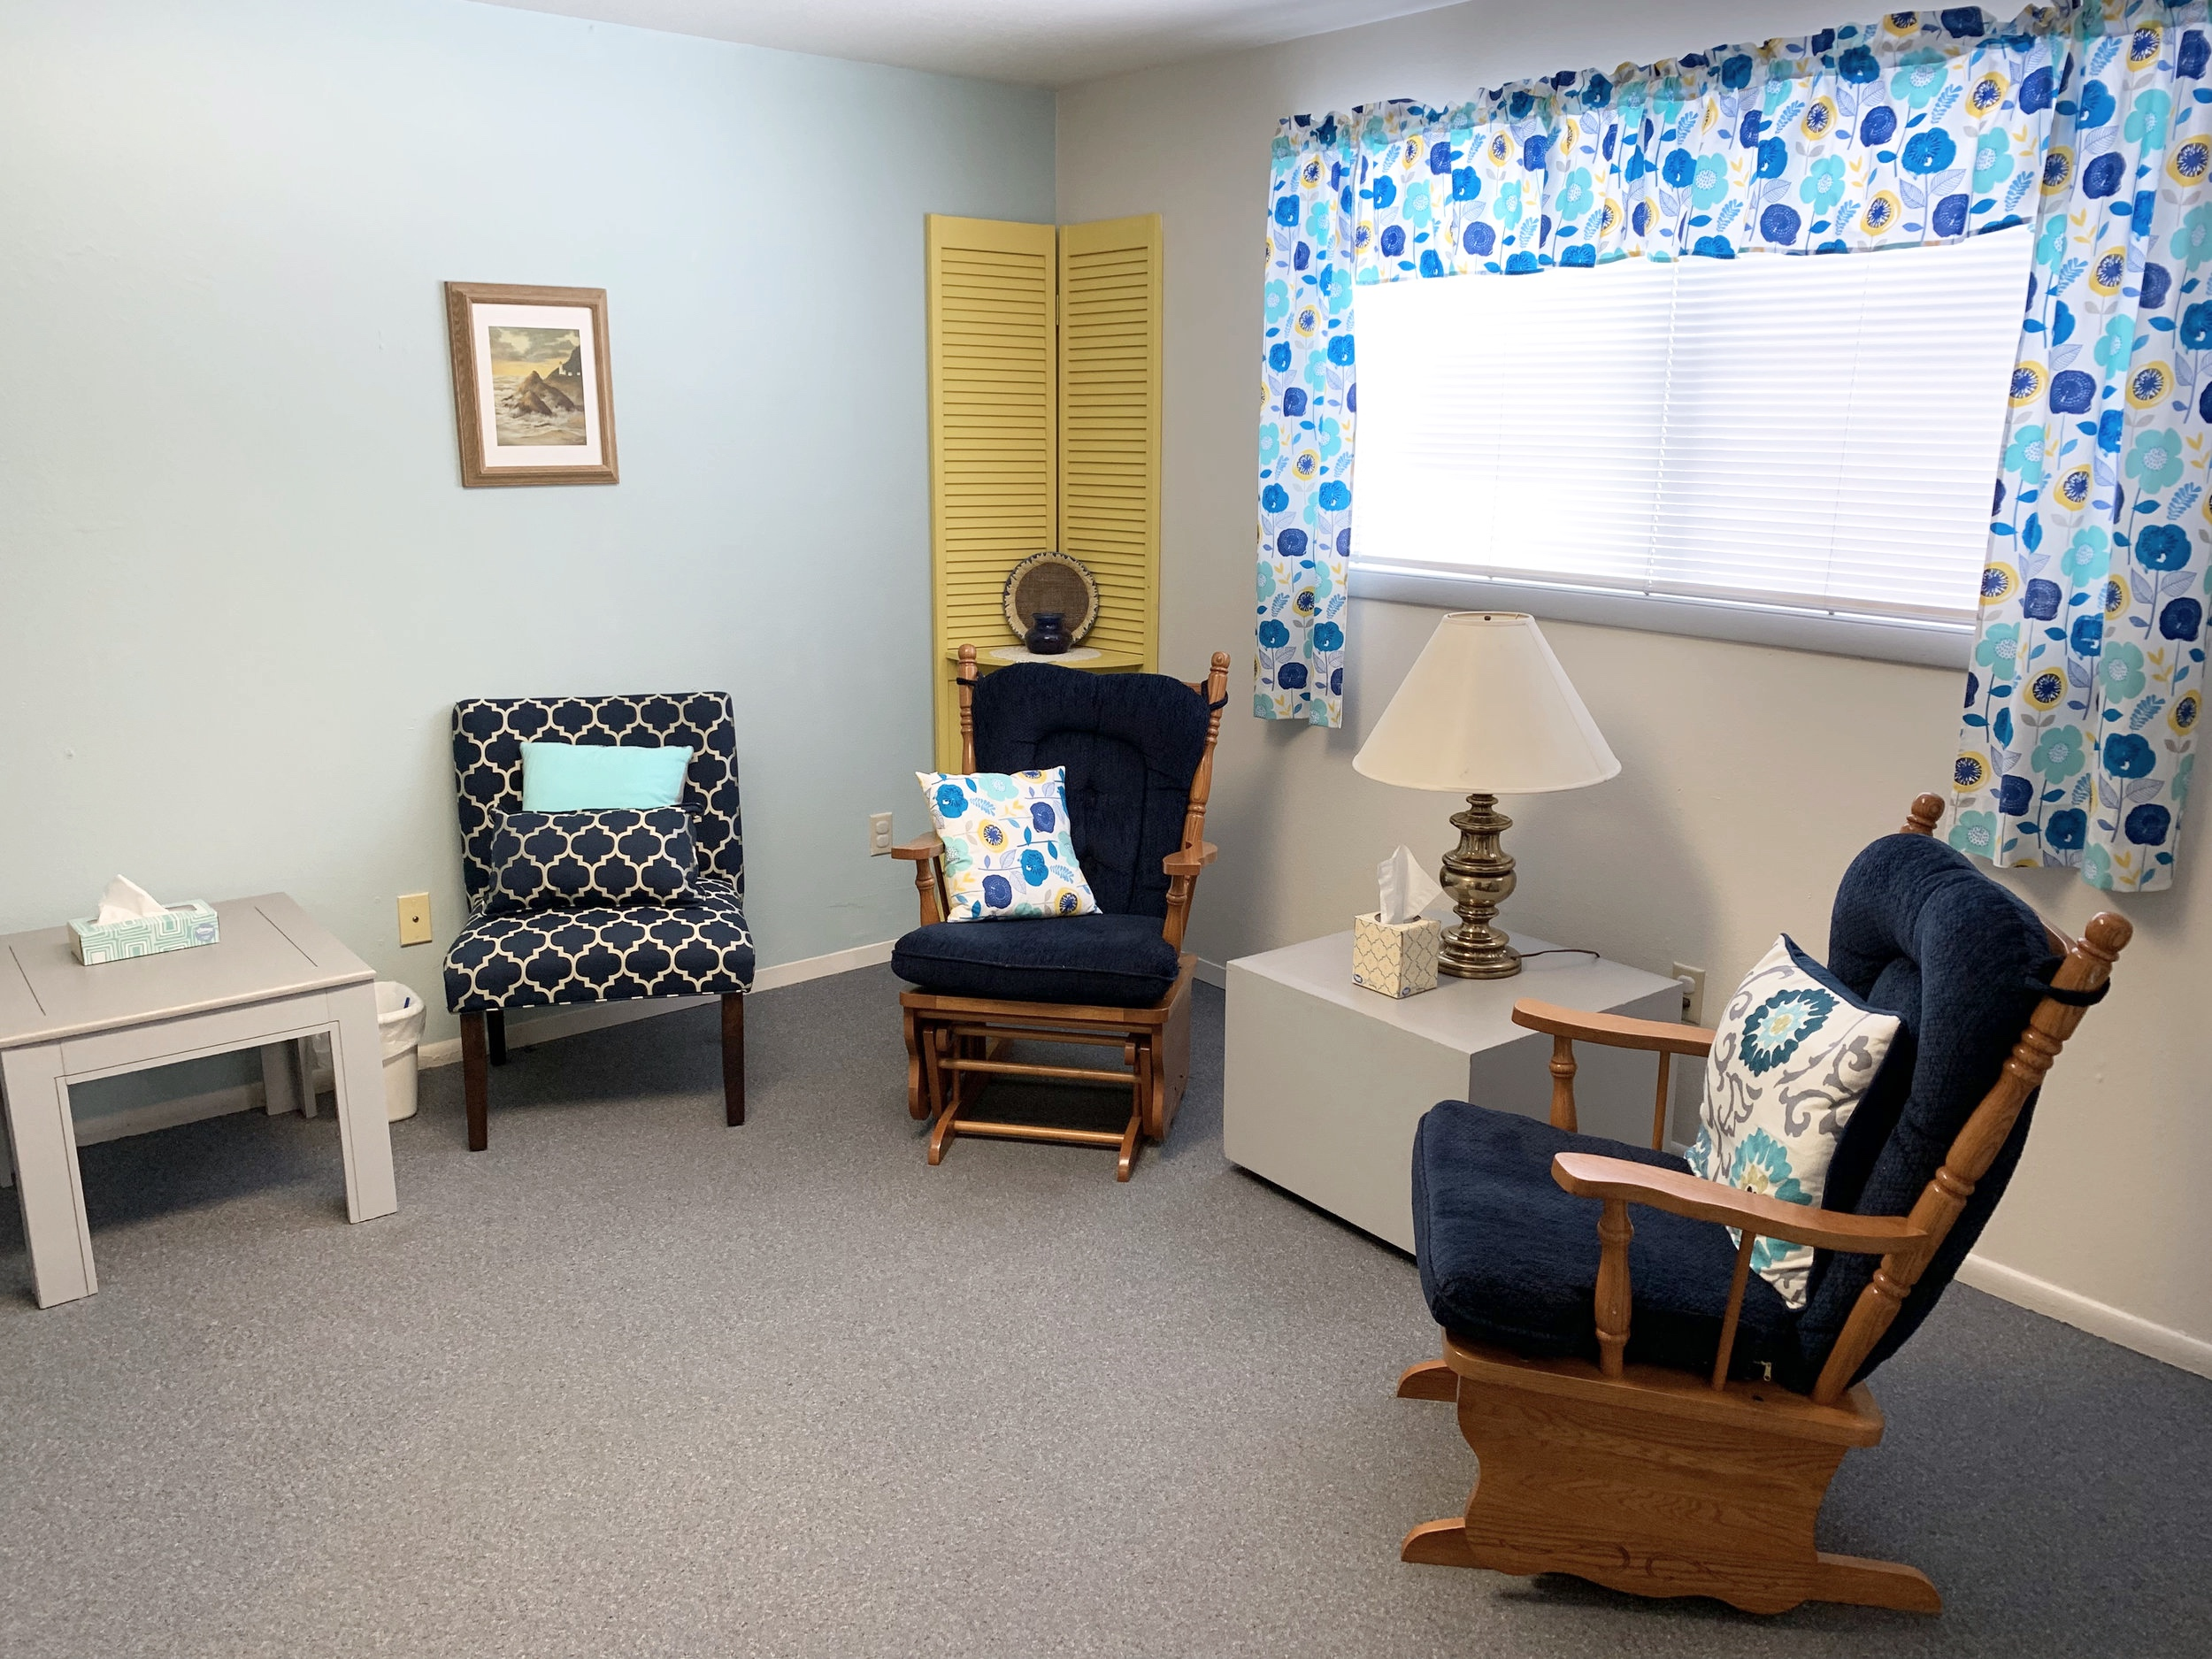 A Client room at Next step pregnancy and relationship center